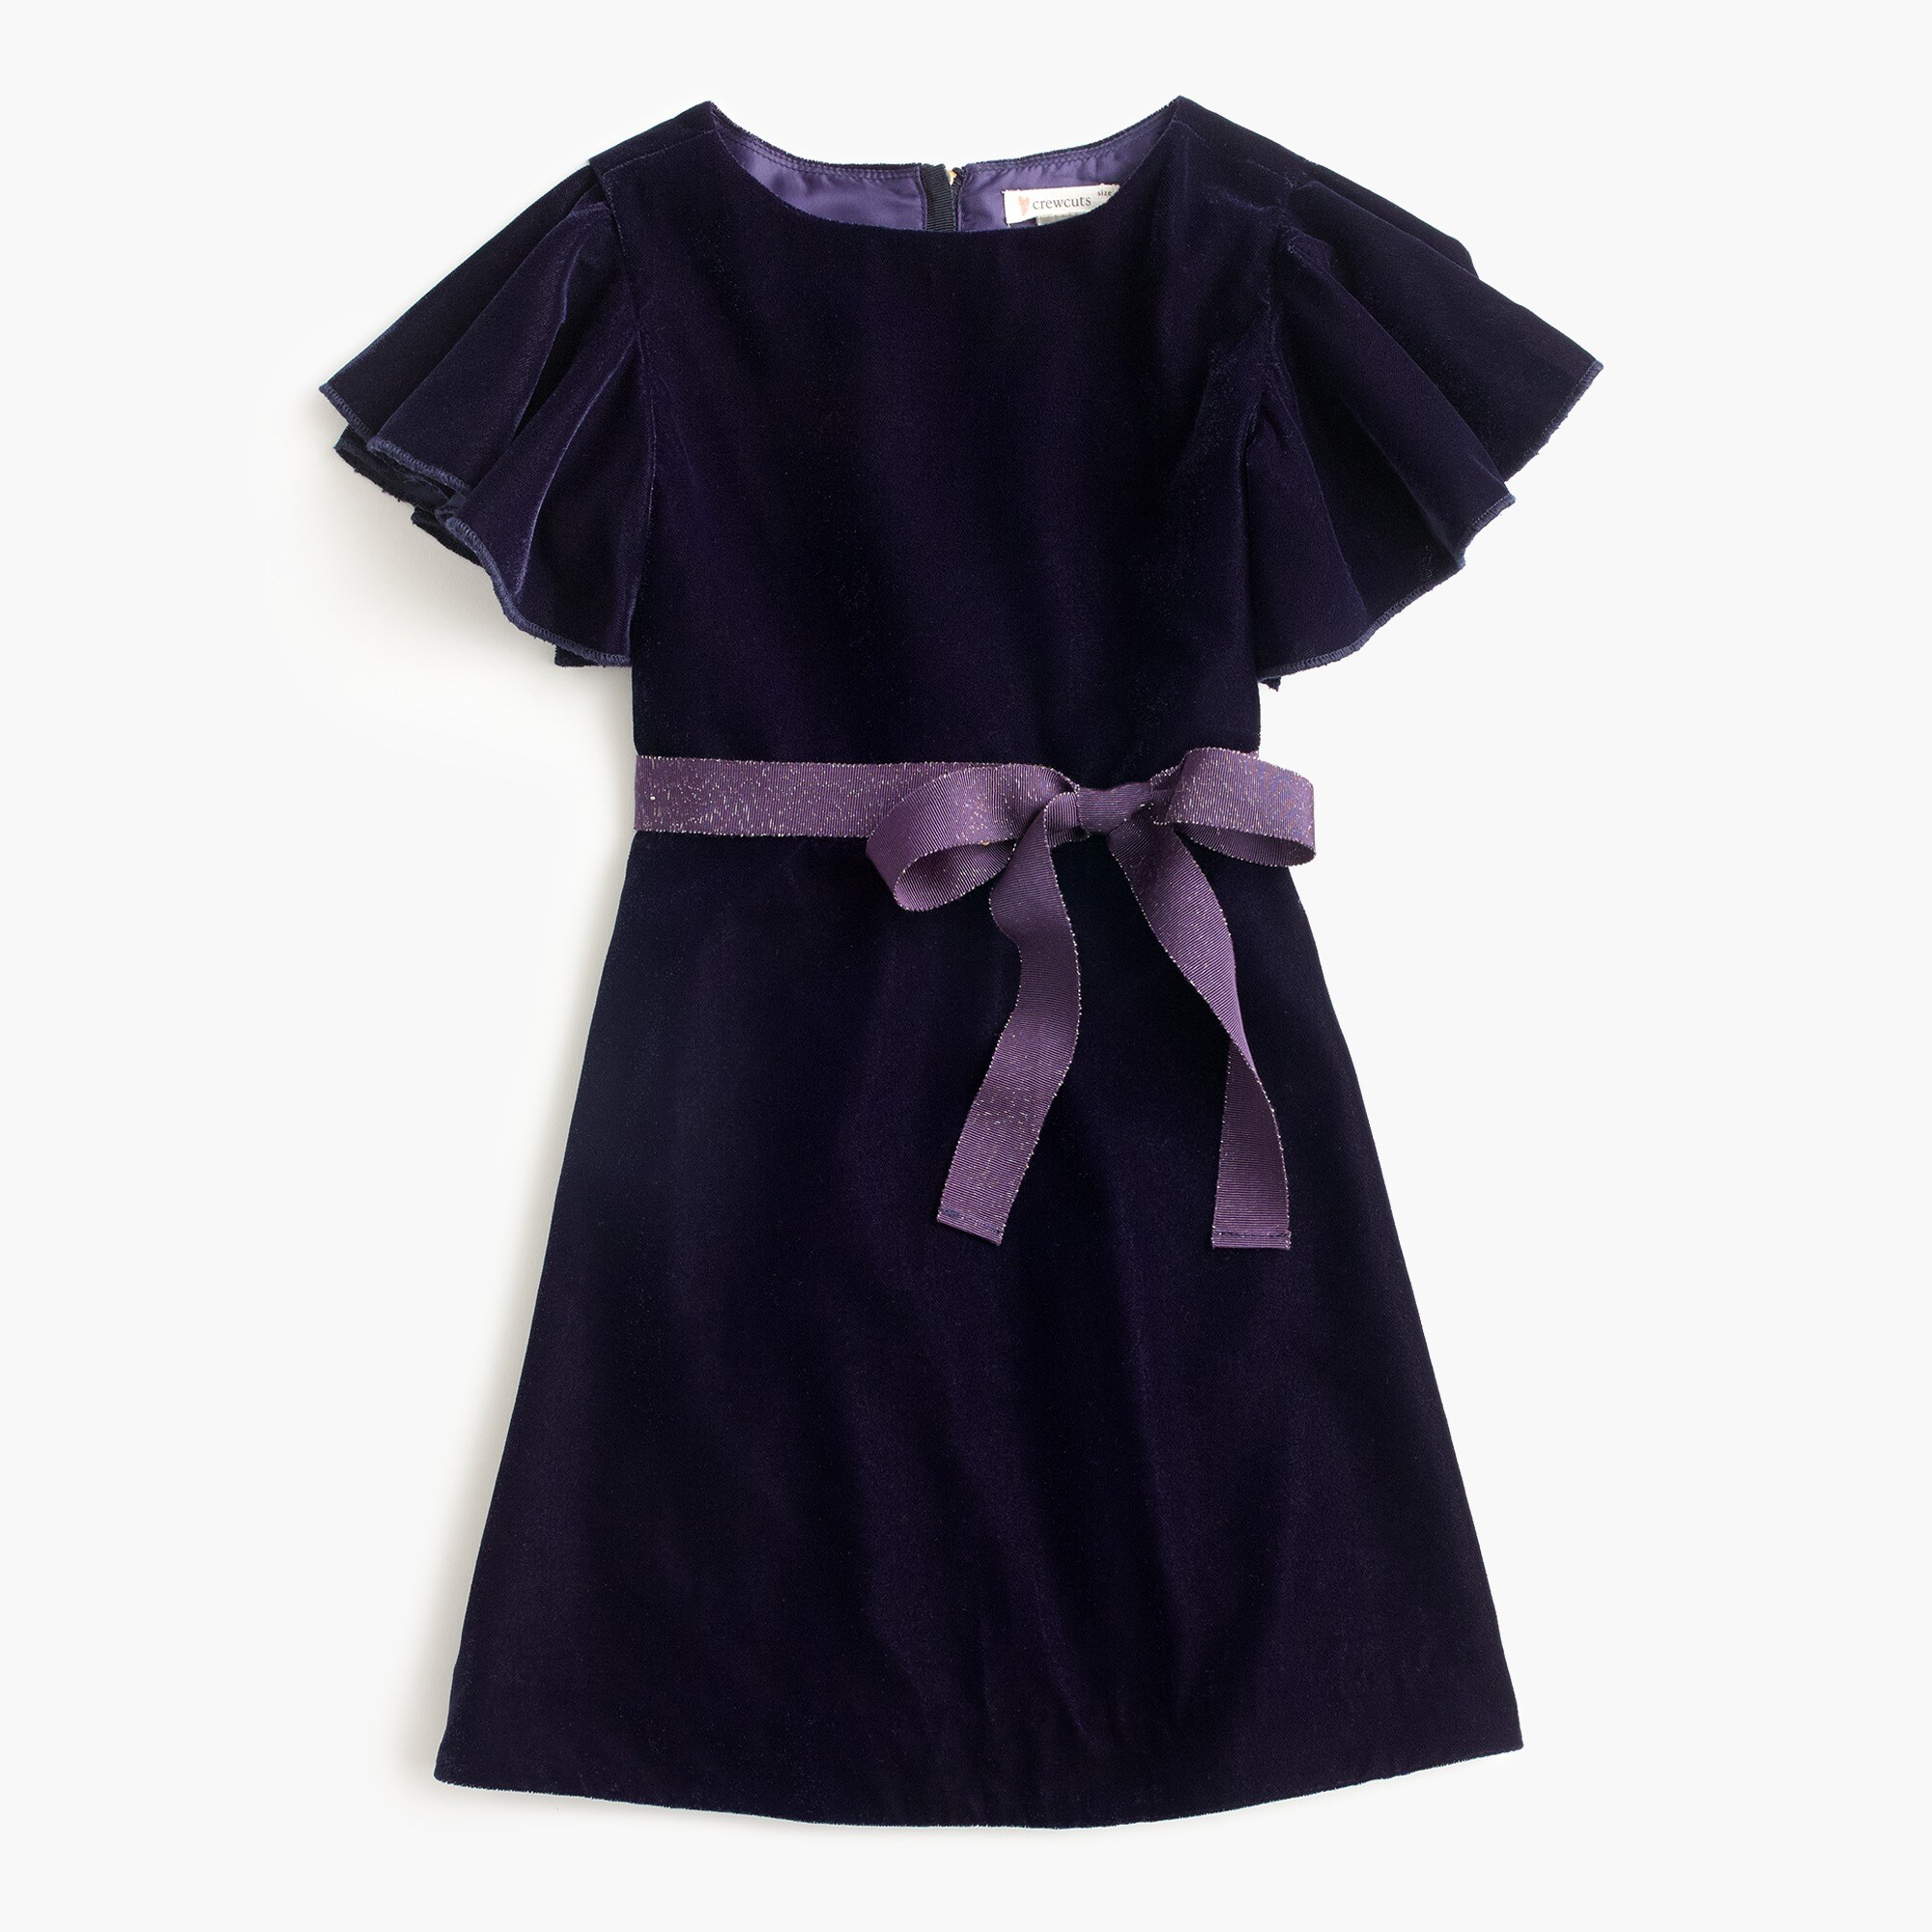 Image 1 for Girls' flutter-sleeve velvet dress